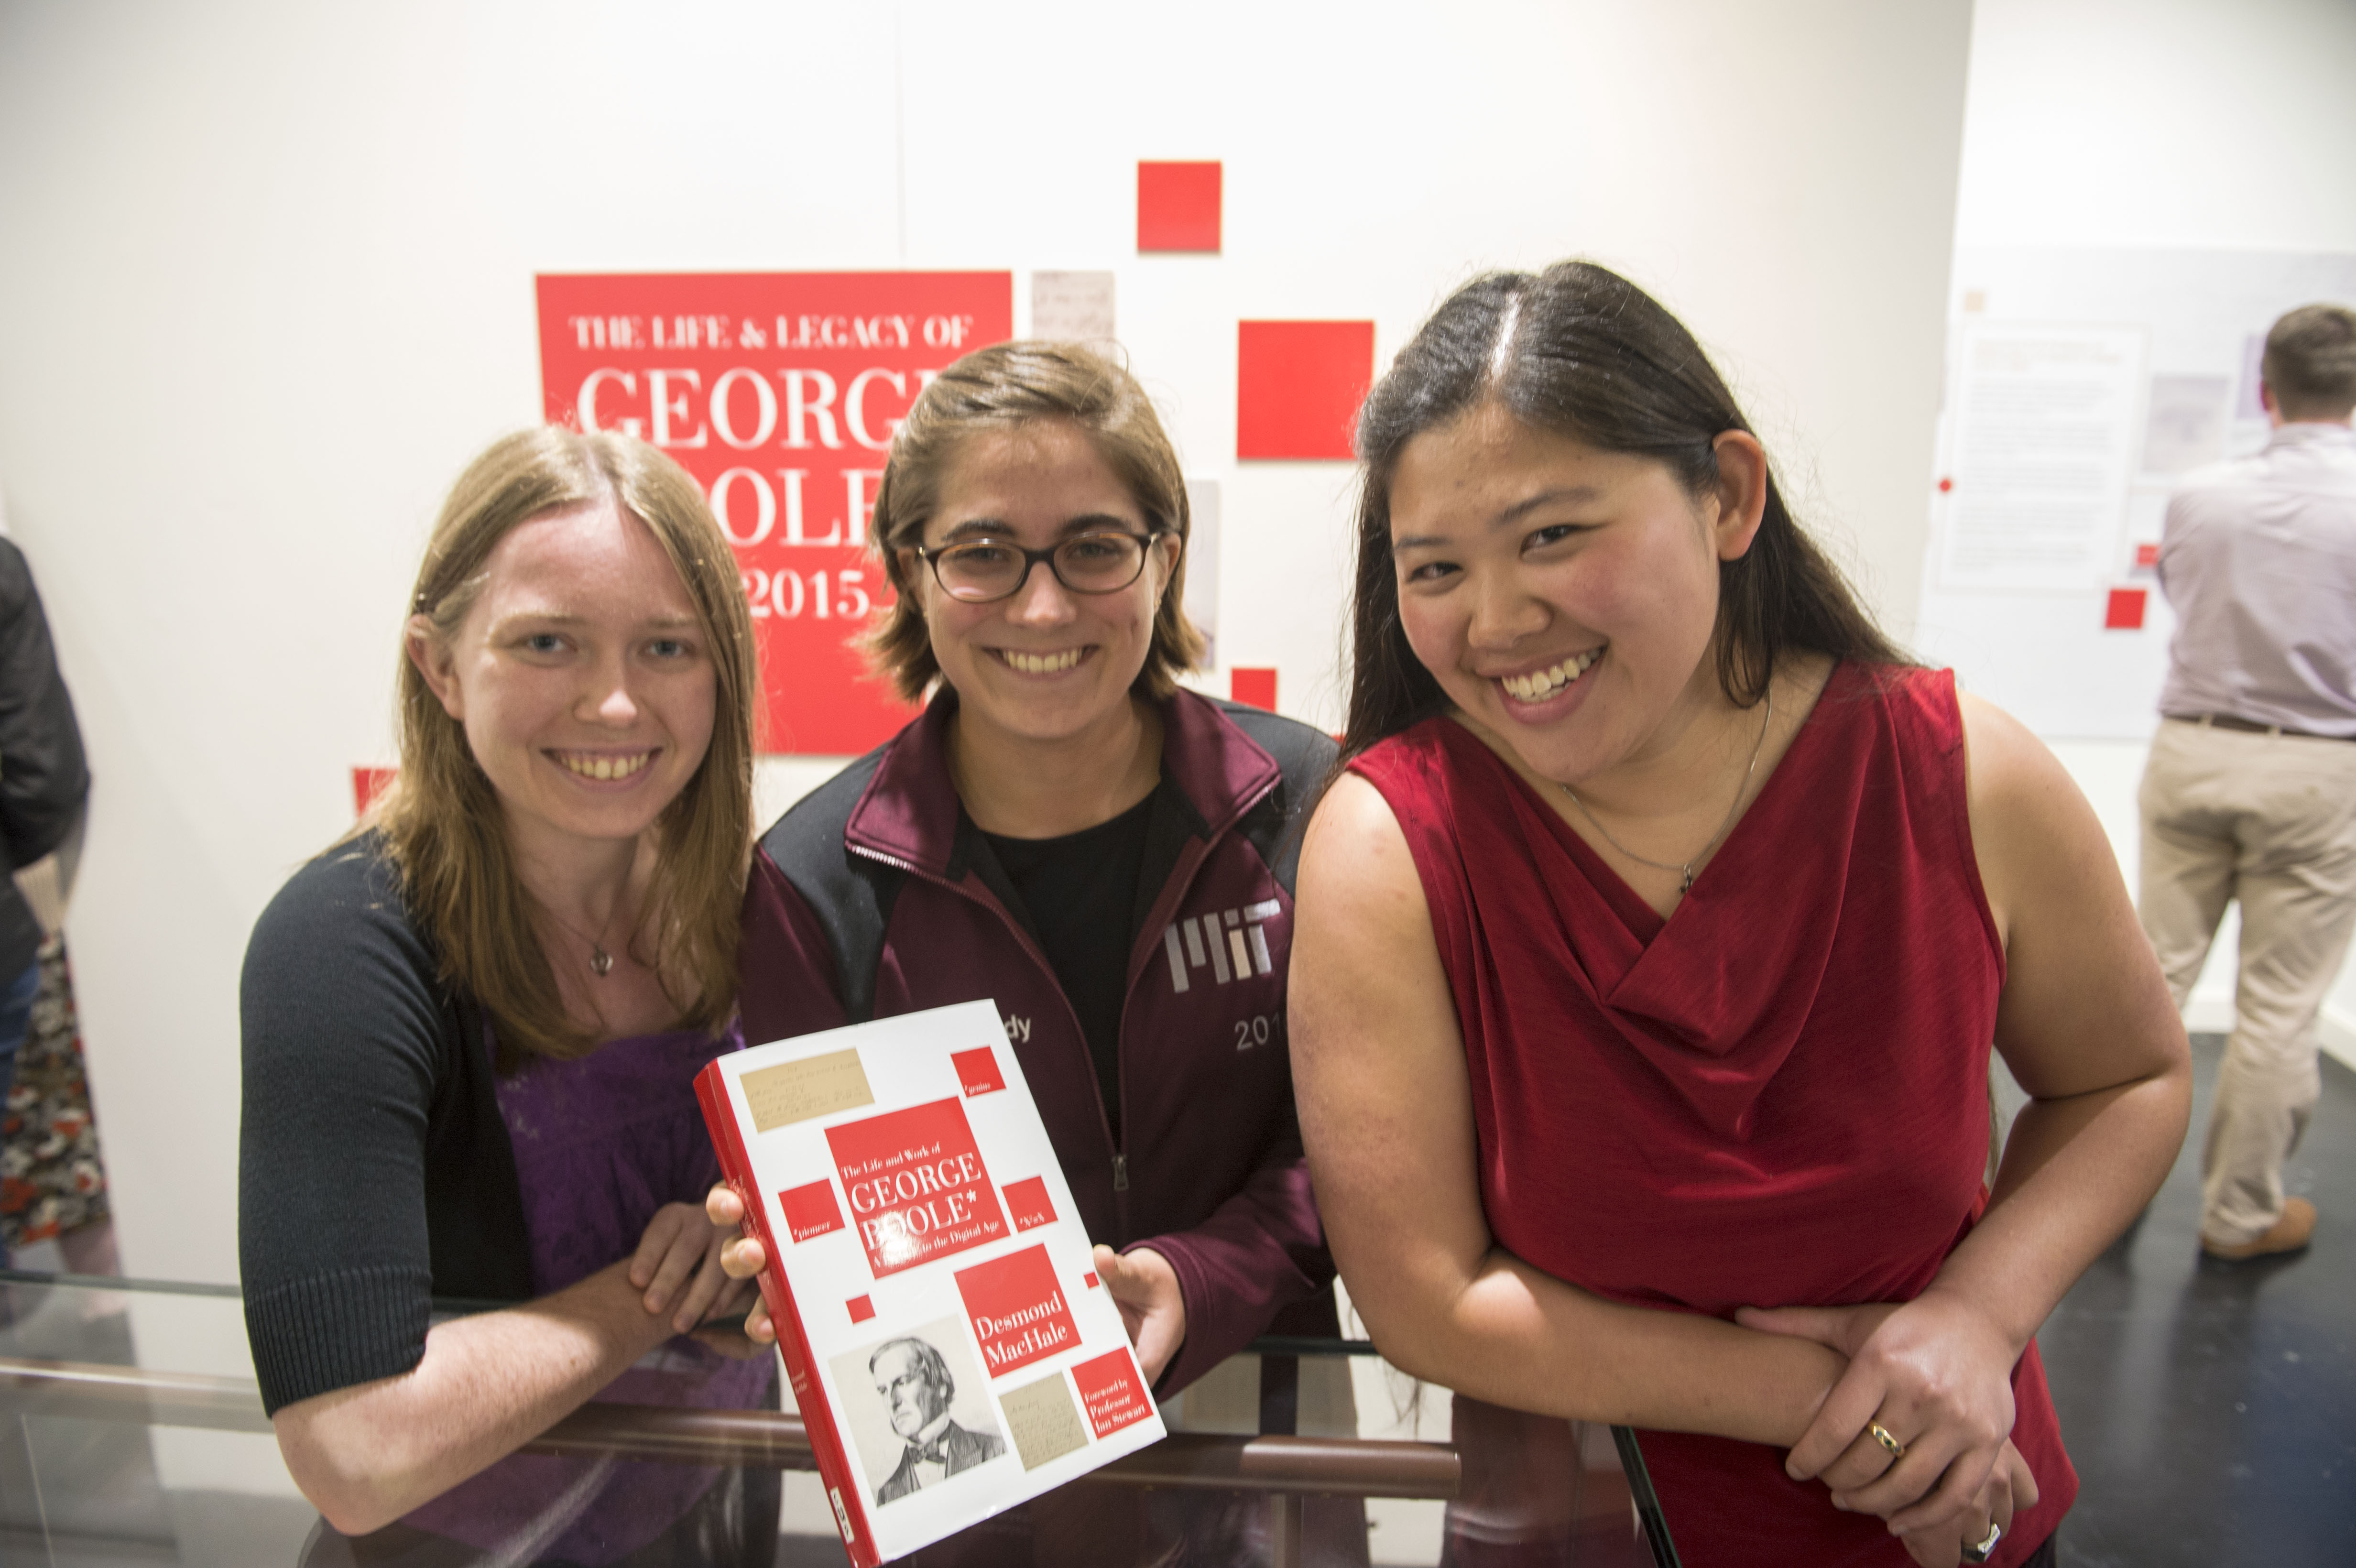 MIT students Laura Standley, Grace Cassidy and Emily Yue at the opening of UCC Library's exhibition, Life and Legacy of George Boole 1815 - 2015.